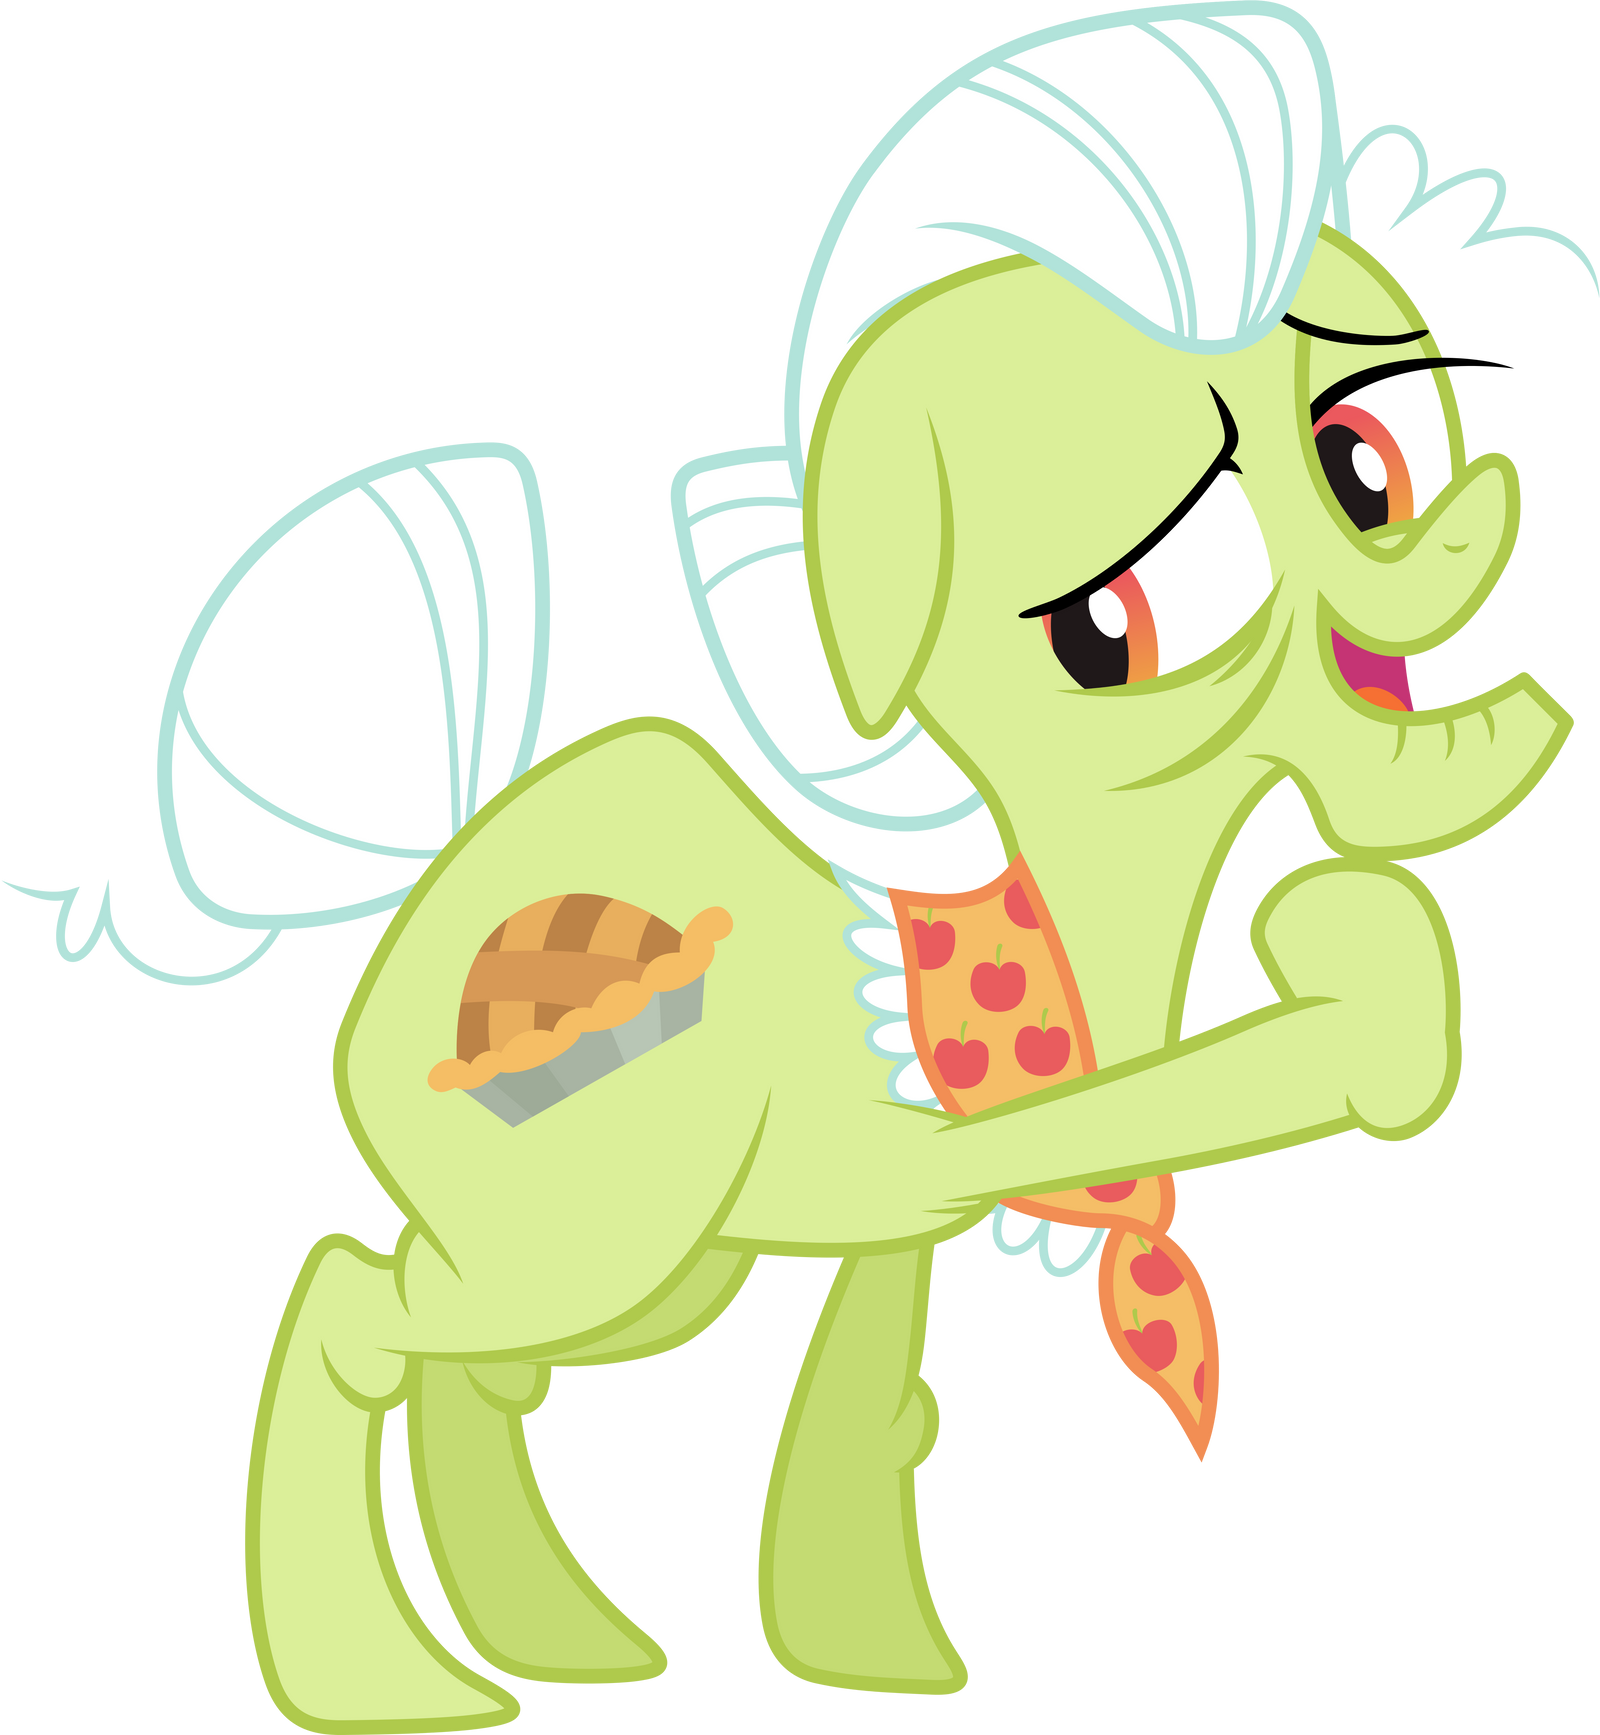 granny smith by 90sigma on deviantart my little pony clipart rainbow dash my little pony clipart pgs